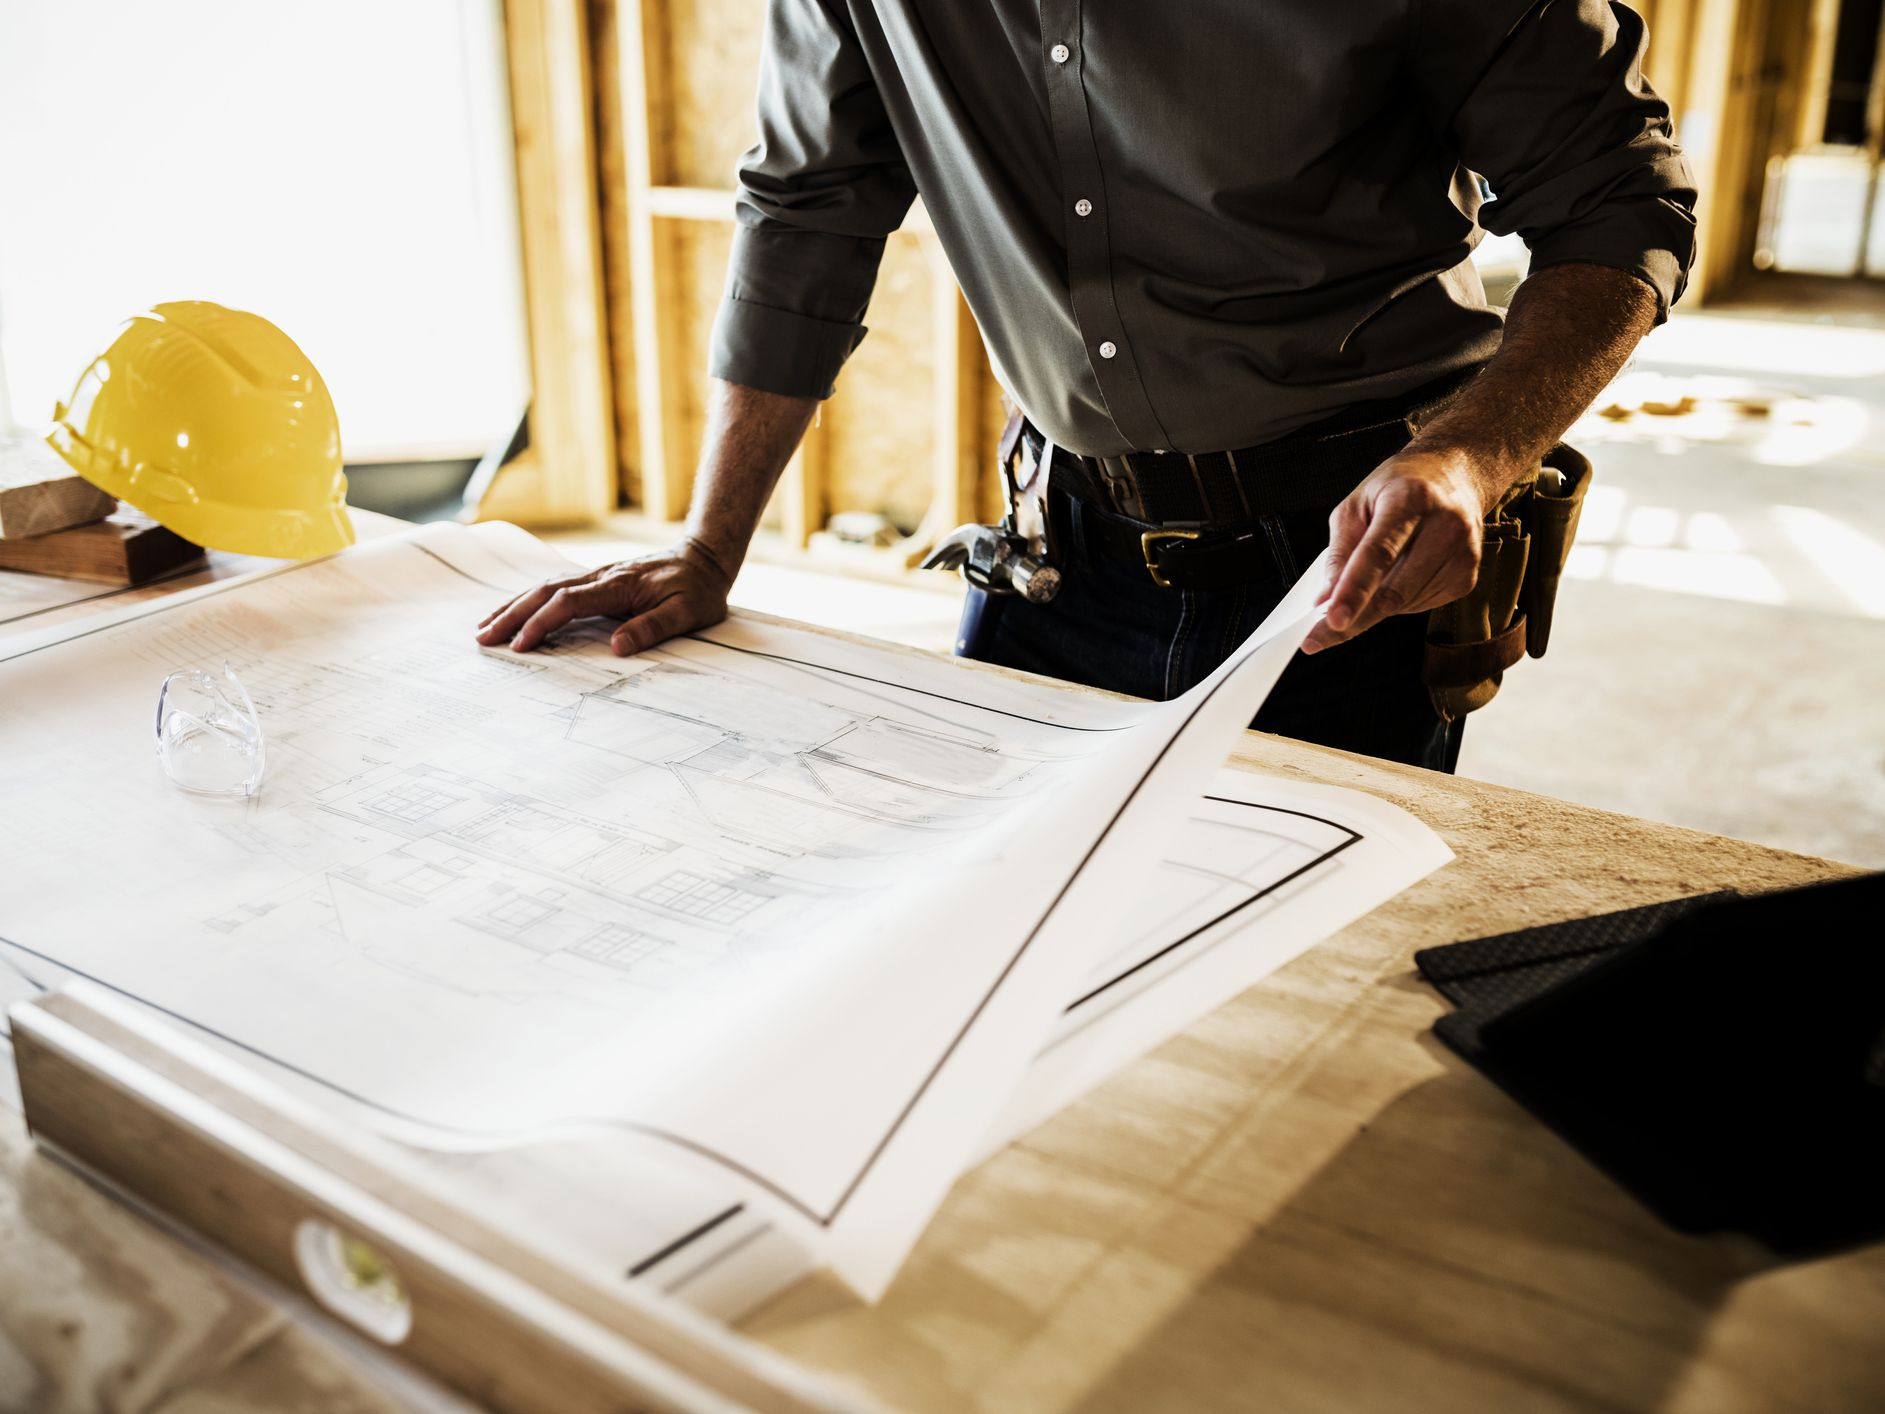 Renov & Co Les Herbiers when do you need a permit for your remodeling project?